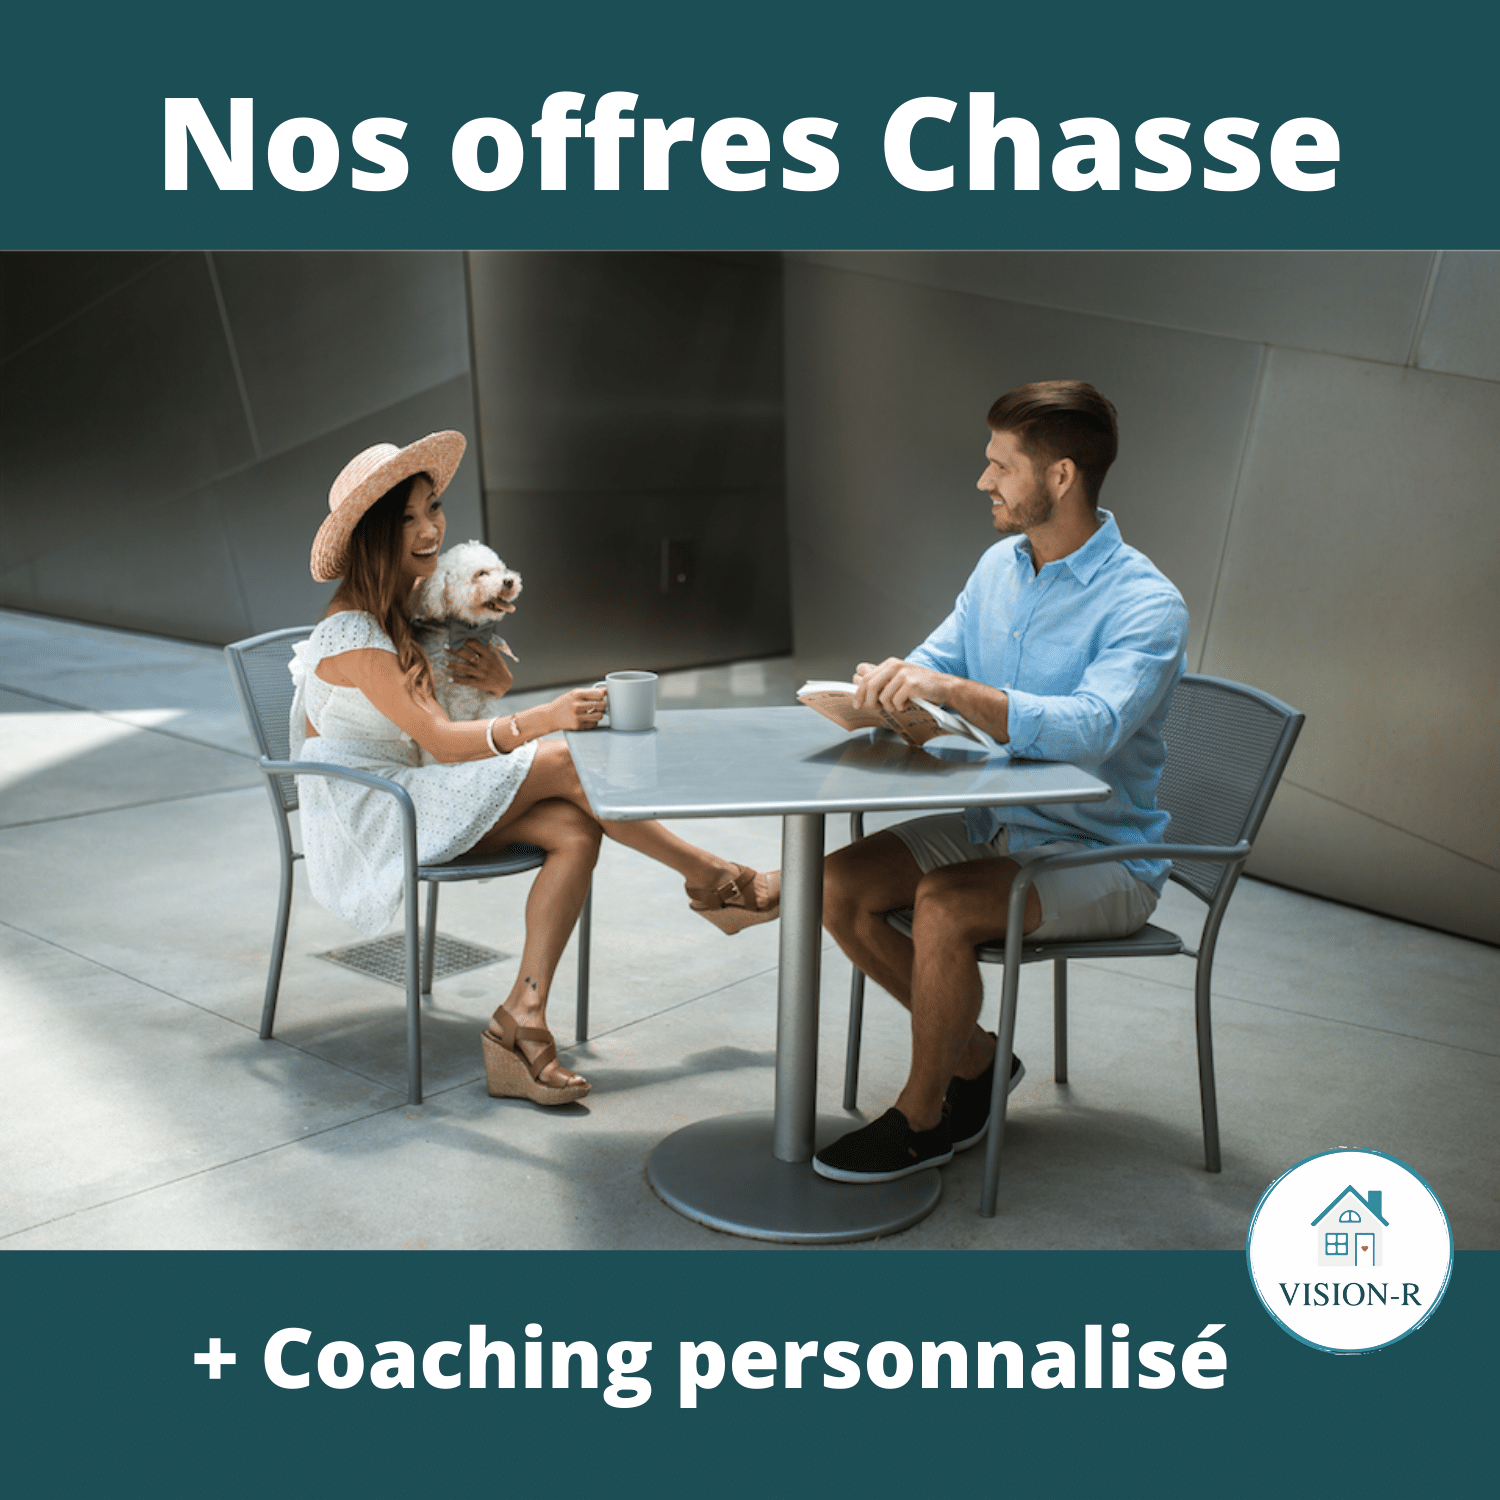 Offre chasse Vision-R immobilier